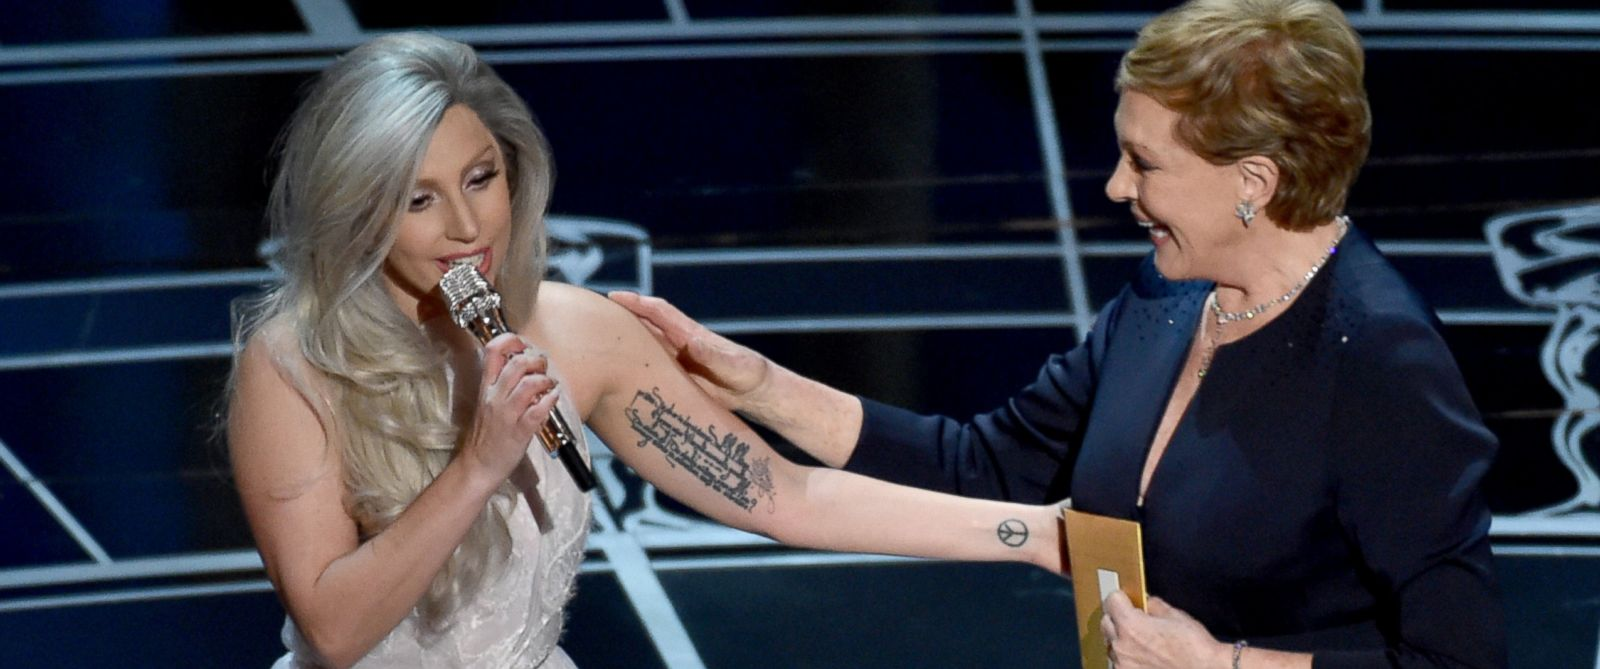 PHOTO: Lady Gaga, left, and Julie Andrews, right, speak at the Oscars on Feb. 22, 2015 in Los Angeles.